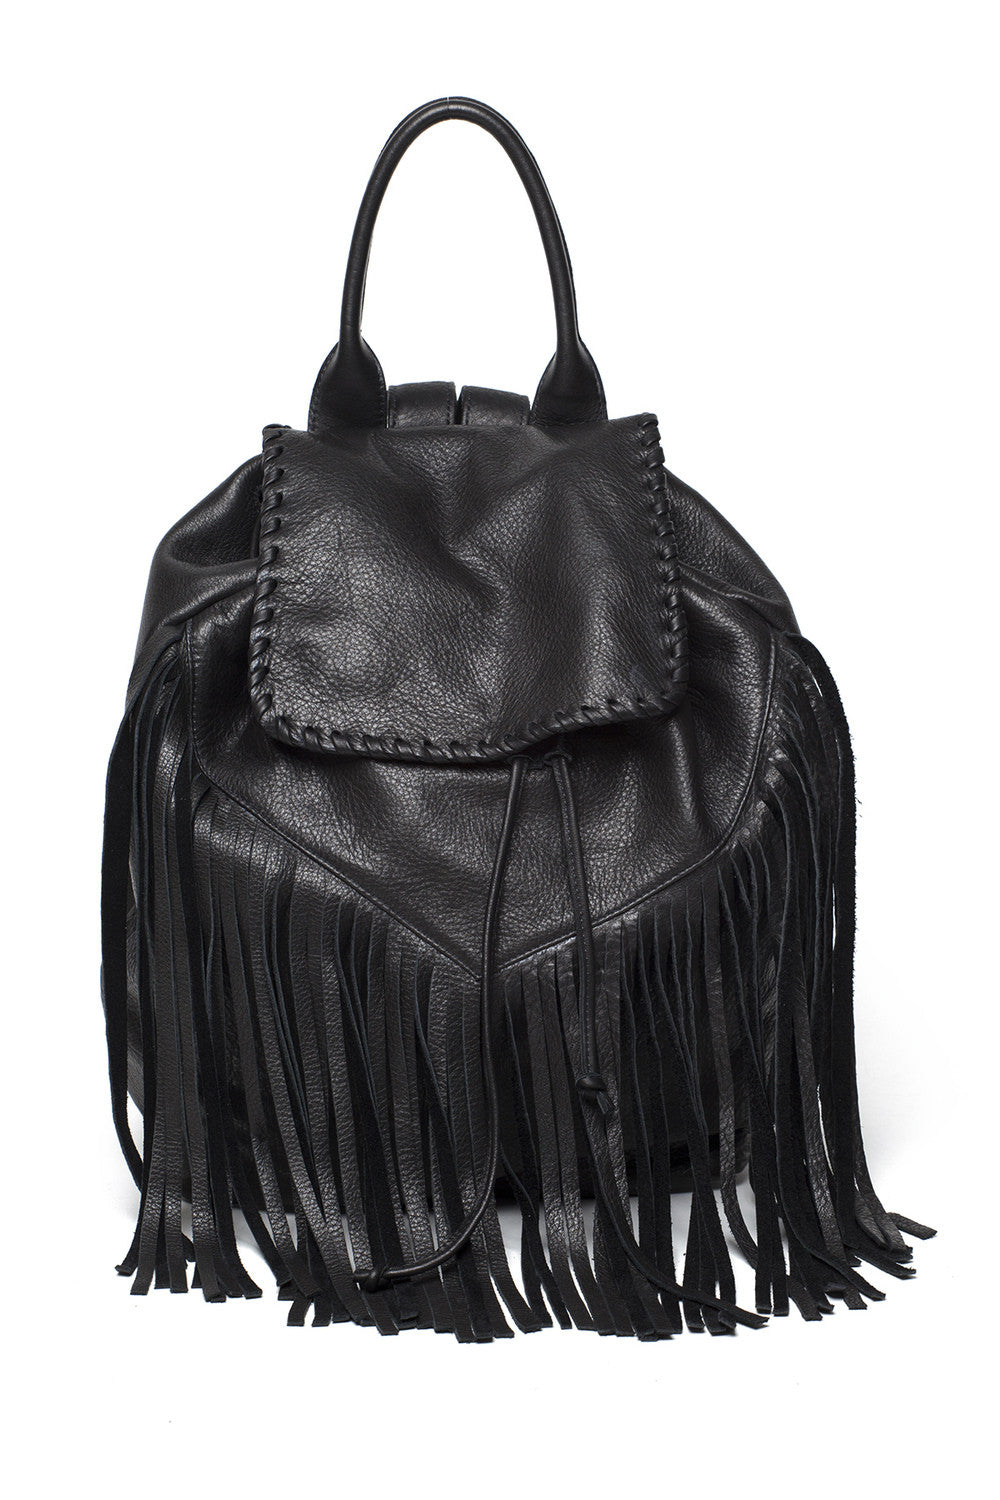 Noel Fringe Backpack - Black - Laggo - Bag - TOPGEARNY